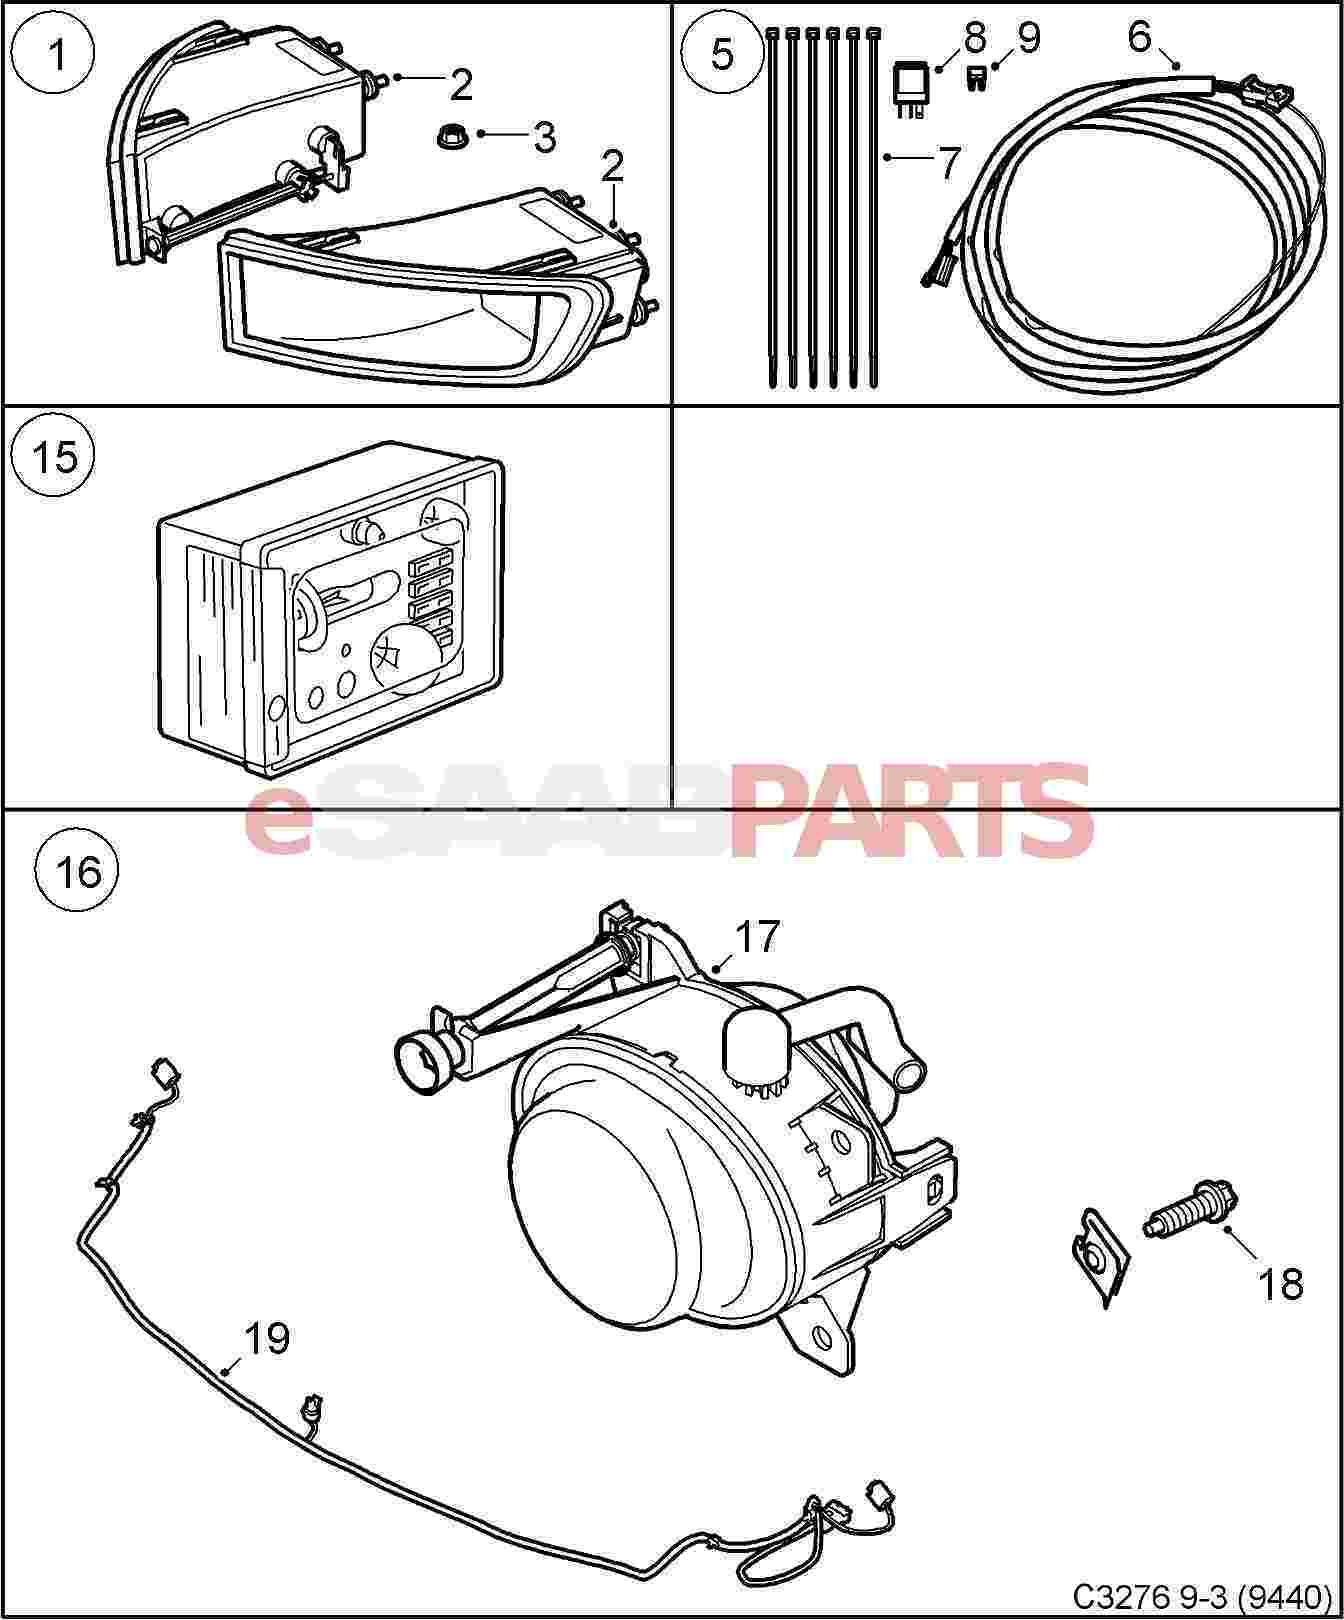 71690 esaabparts com saab 9 3 (9440) \u003e accessories & fluids parts 2008 saab 9-3 wiring diagram at reclaimingppi.co